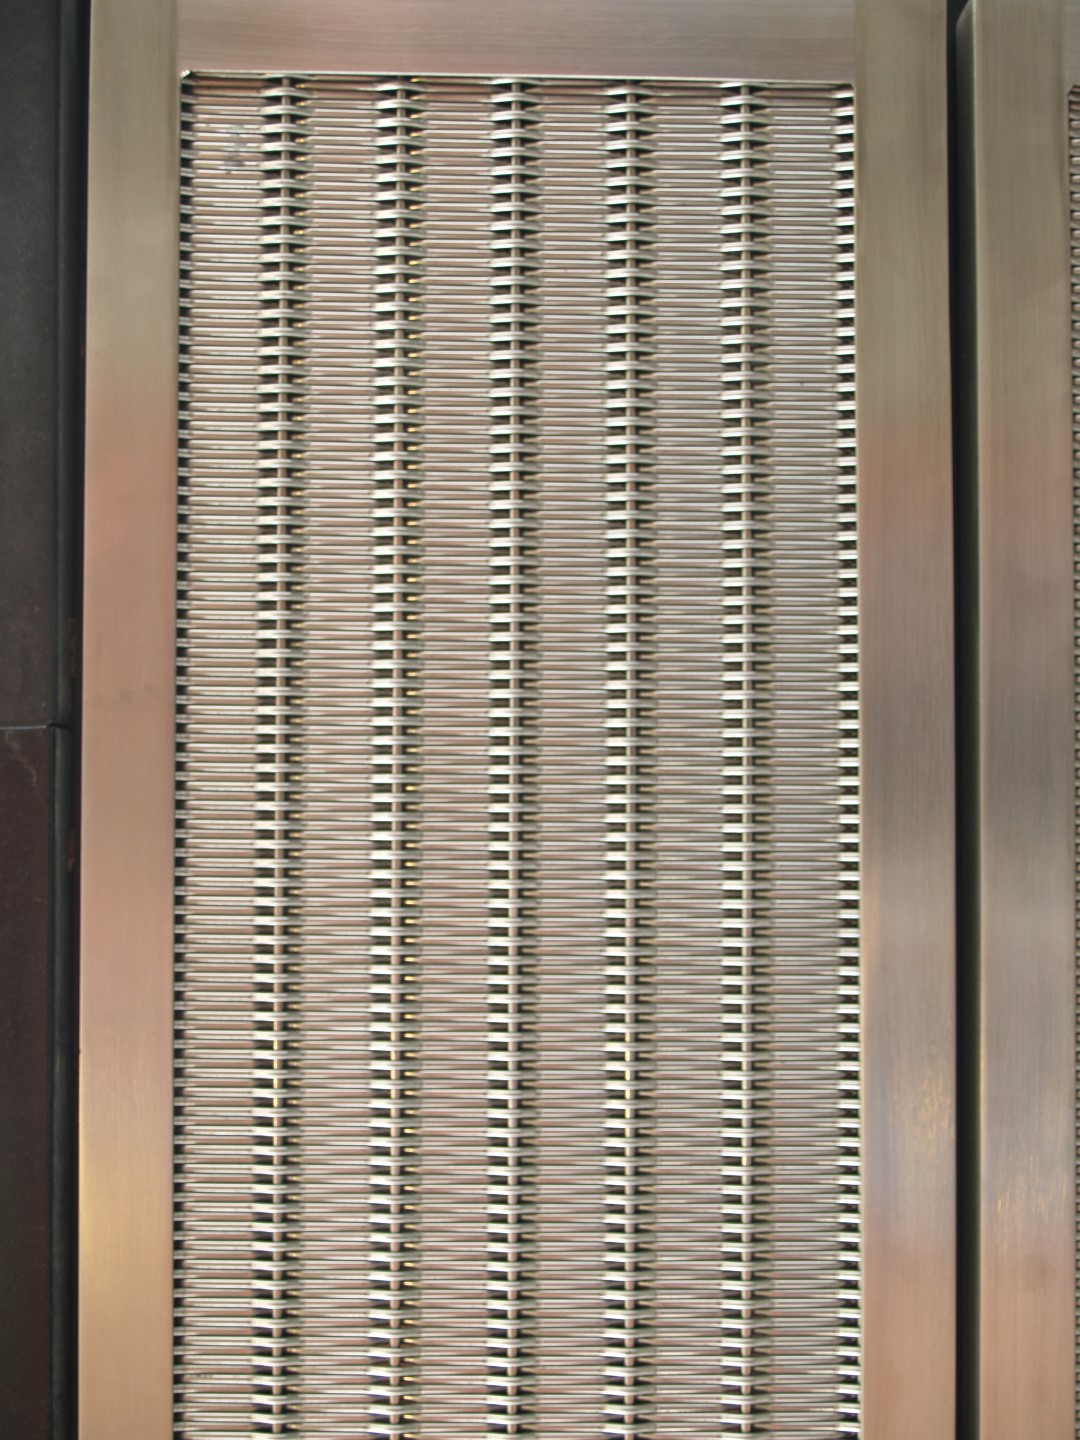 This woven wire mesh pattern was created specifically for the Montgomery Park office building project.